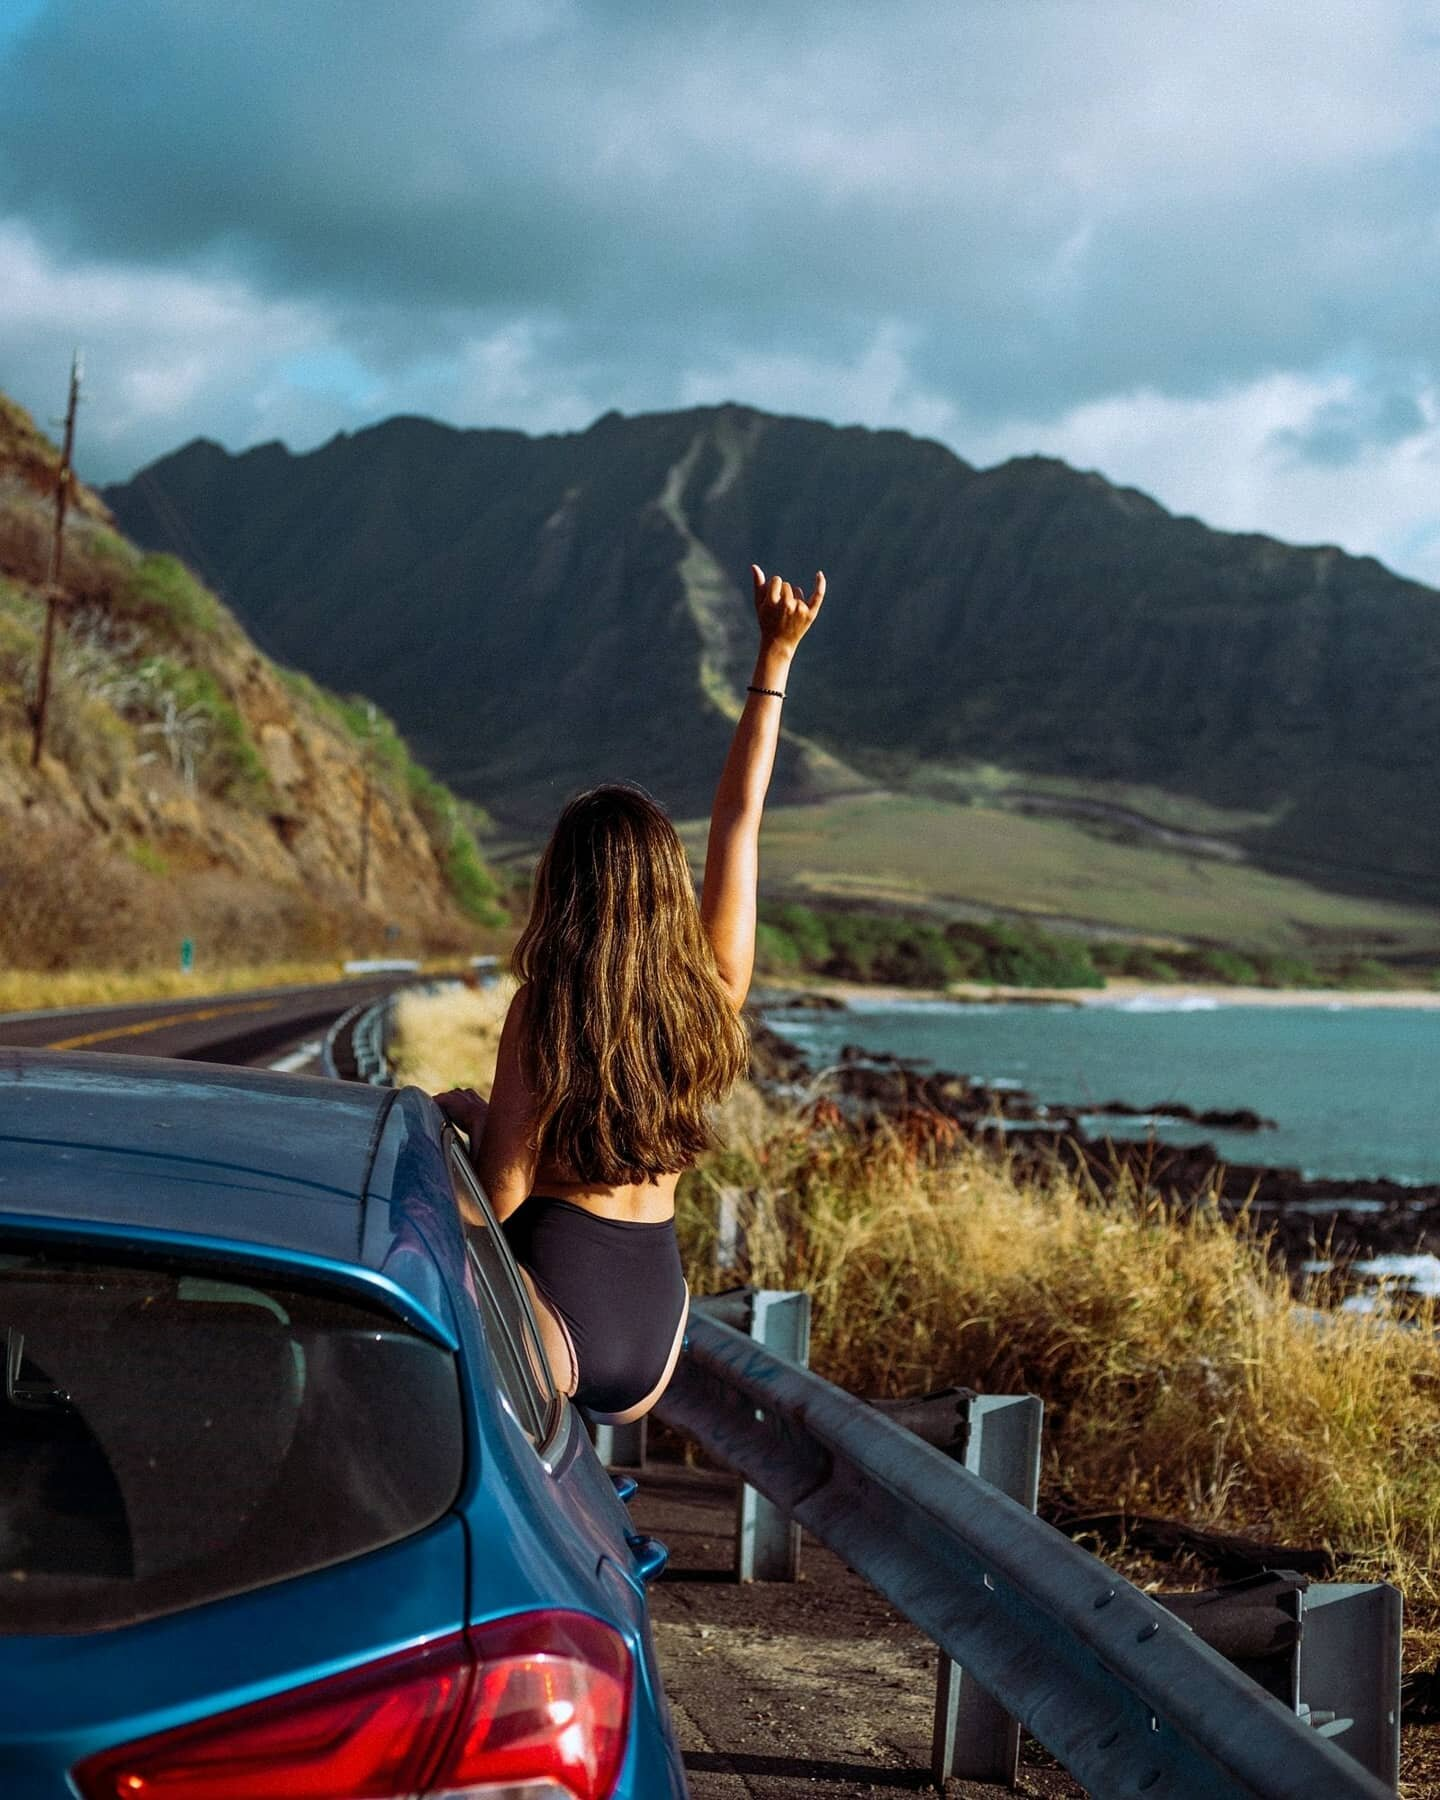 Oahu, the gathering place [POCKET GUIDE IS HERE!] 👇🏽⠀ ⠀ Lately, I've been asked so often about my favorite things to do on Oahu. I've been wanting to put my recommendations into a resource for the longest time, and I guess this was just the push I needed. ⠀ ⠀ This guide is 15+ pages filled with the places that bring me the most joy on this island I have called home for the first 17 years of my life. There are hikes, beaches, restaurants, cultural attractions, and even discounts you can't find anywhere else. It's been a true labor of love because while I know Oahu could easily take 50+ pages to cover, I wanted to make this as easy-to-use and reference as possible. #OffDutyinHawaii⠀ ⠀ My Oahu Pocket Guide is now available for purchase. 5% of proceeds will go to local nonprofits dedicated to keeping Hawaii beautiful. Get the guide now (link in bio)! 🙌🏽